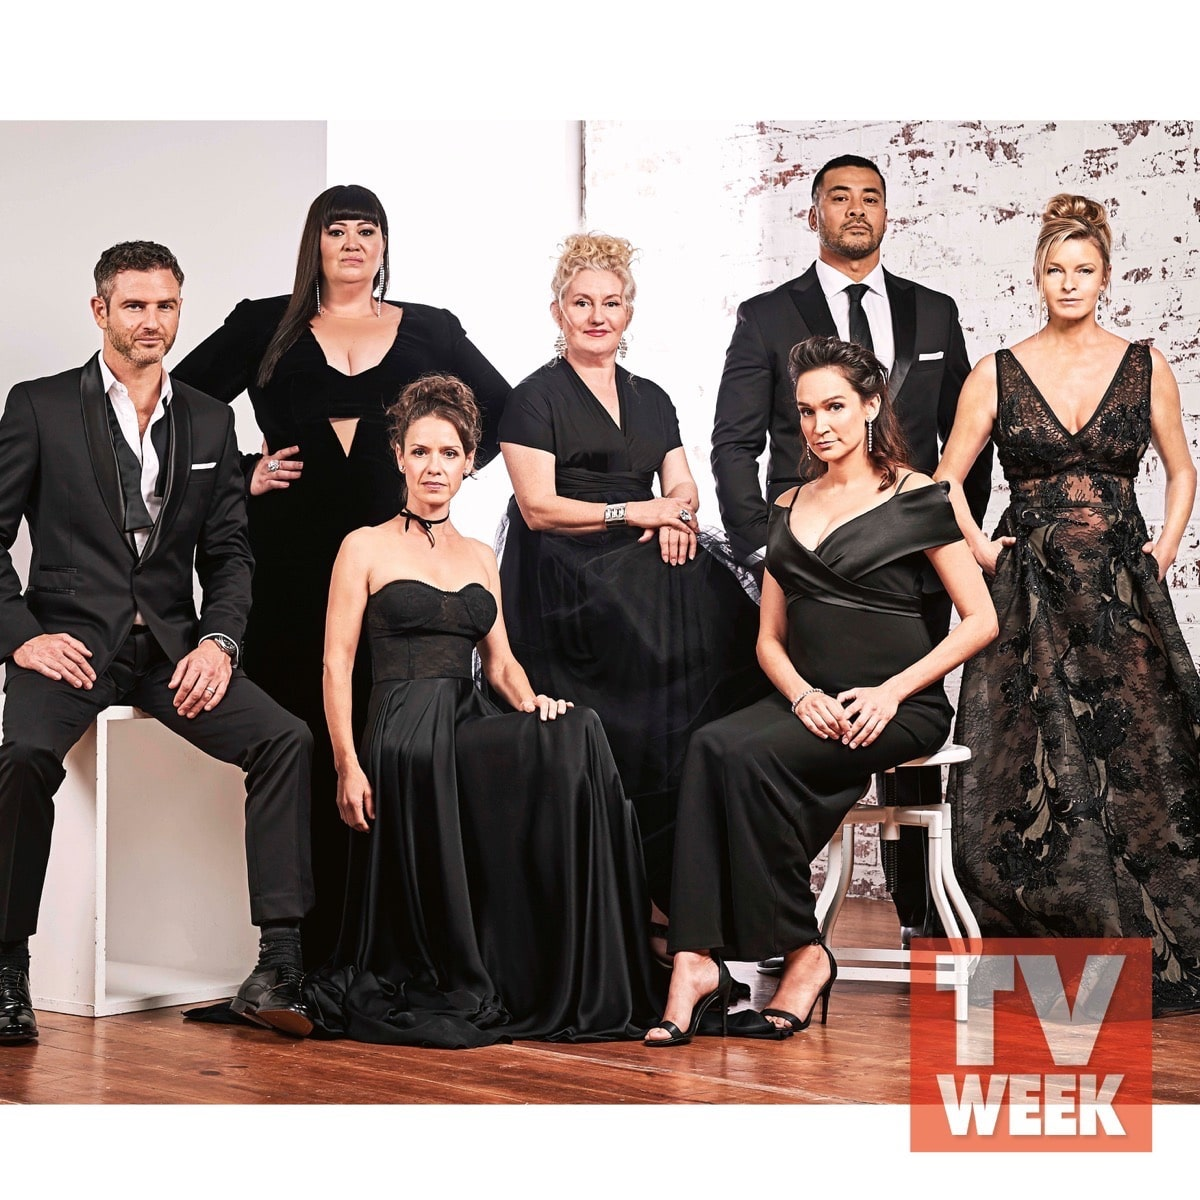 Tammy MacIntosh Congratulations to the amazing cast of Wentworth, in the photos are Celia Ireland, Sigrid Thornton, Katrina Milosevic, Kate Jenkinson, featured in TV Week photoshoot.